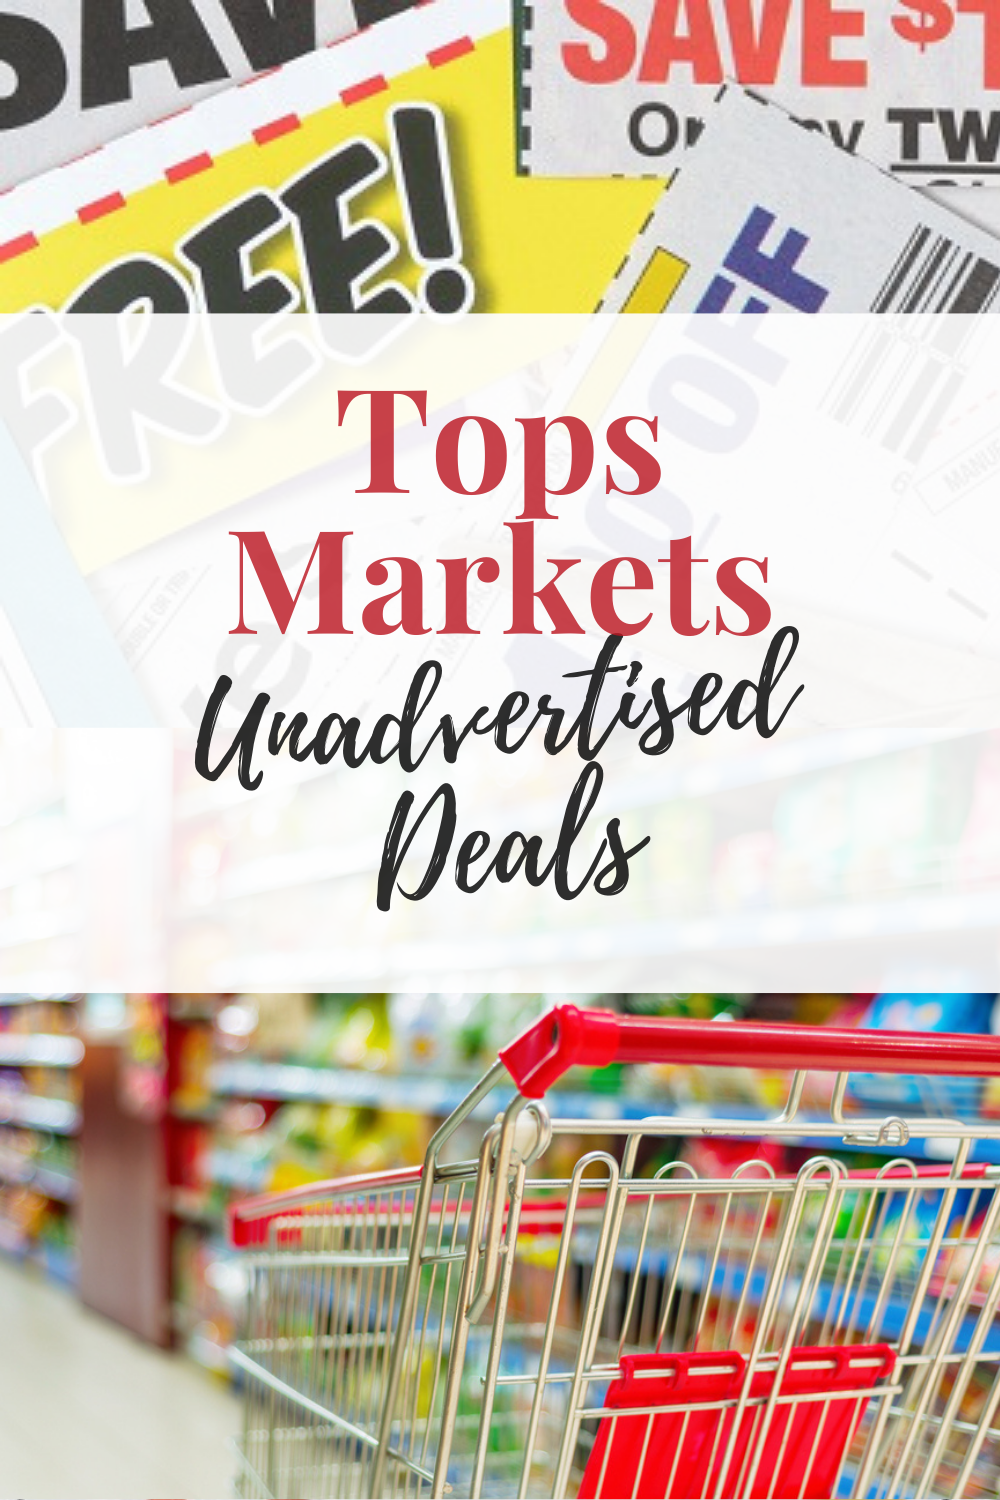 If you are looking for unadvertised coupon deals at Tops Markets, you have come to the right place! Below are what I have found to be unadvertised deals at Tops.